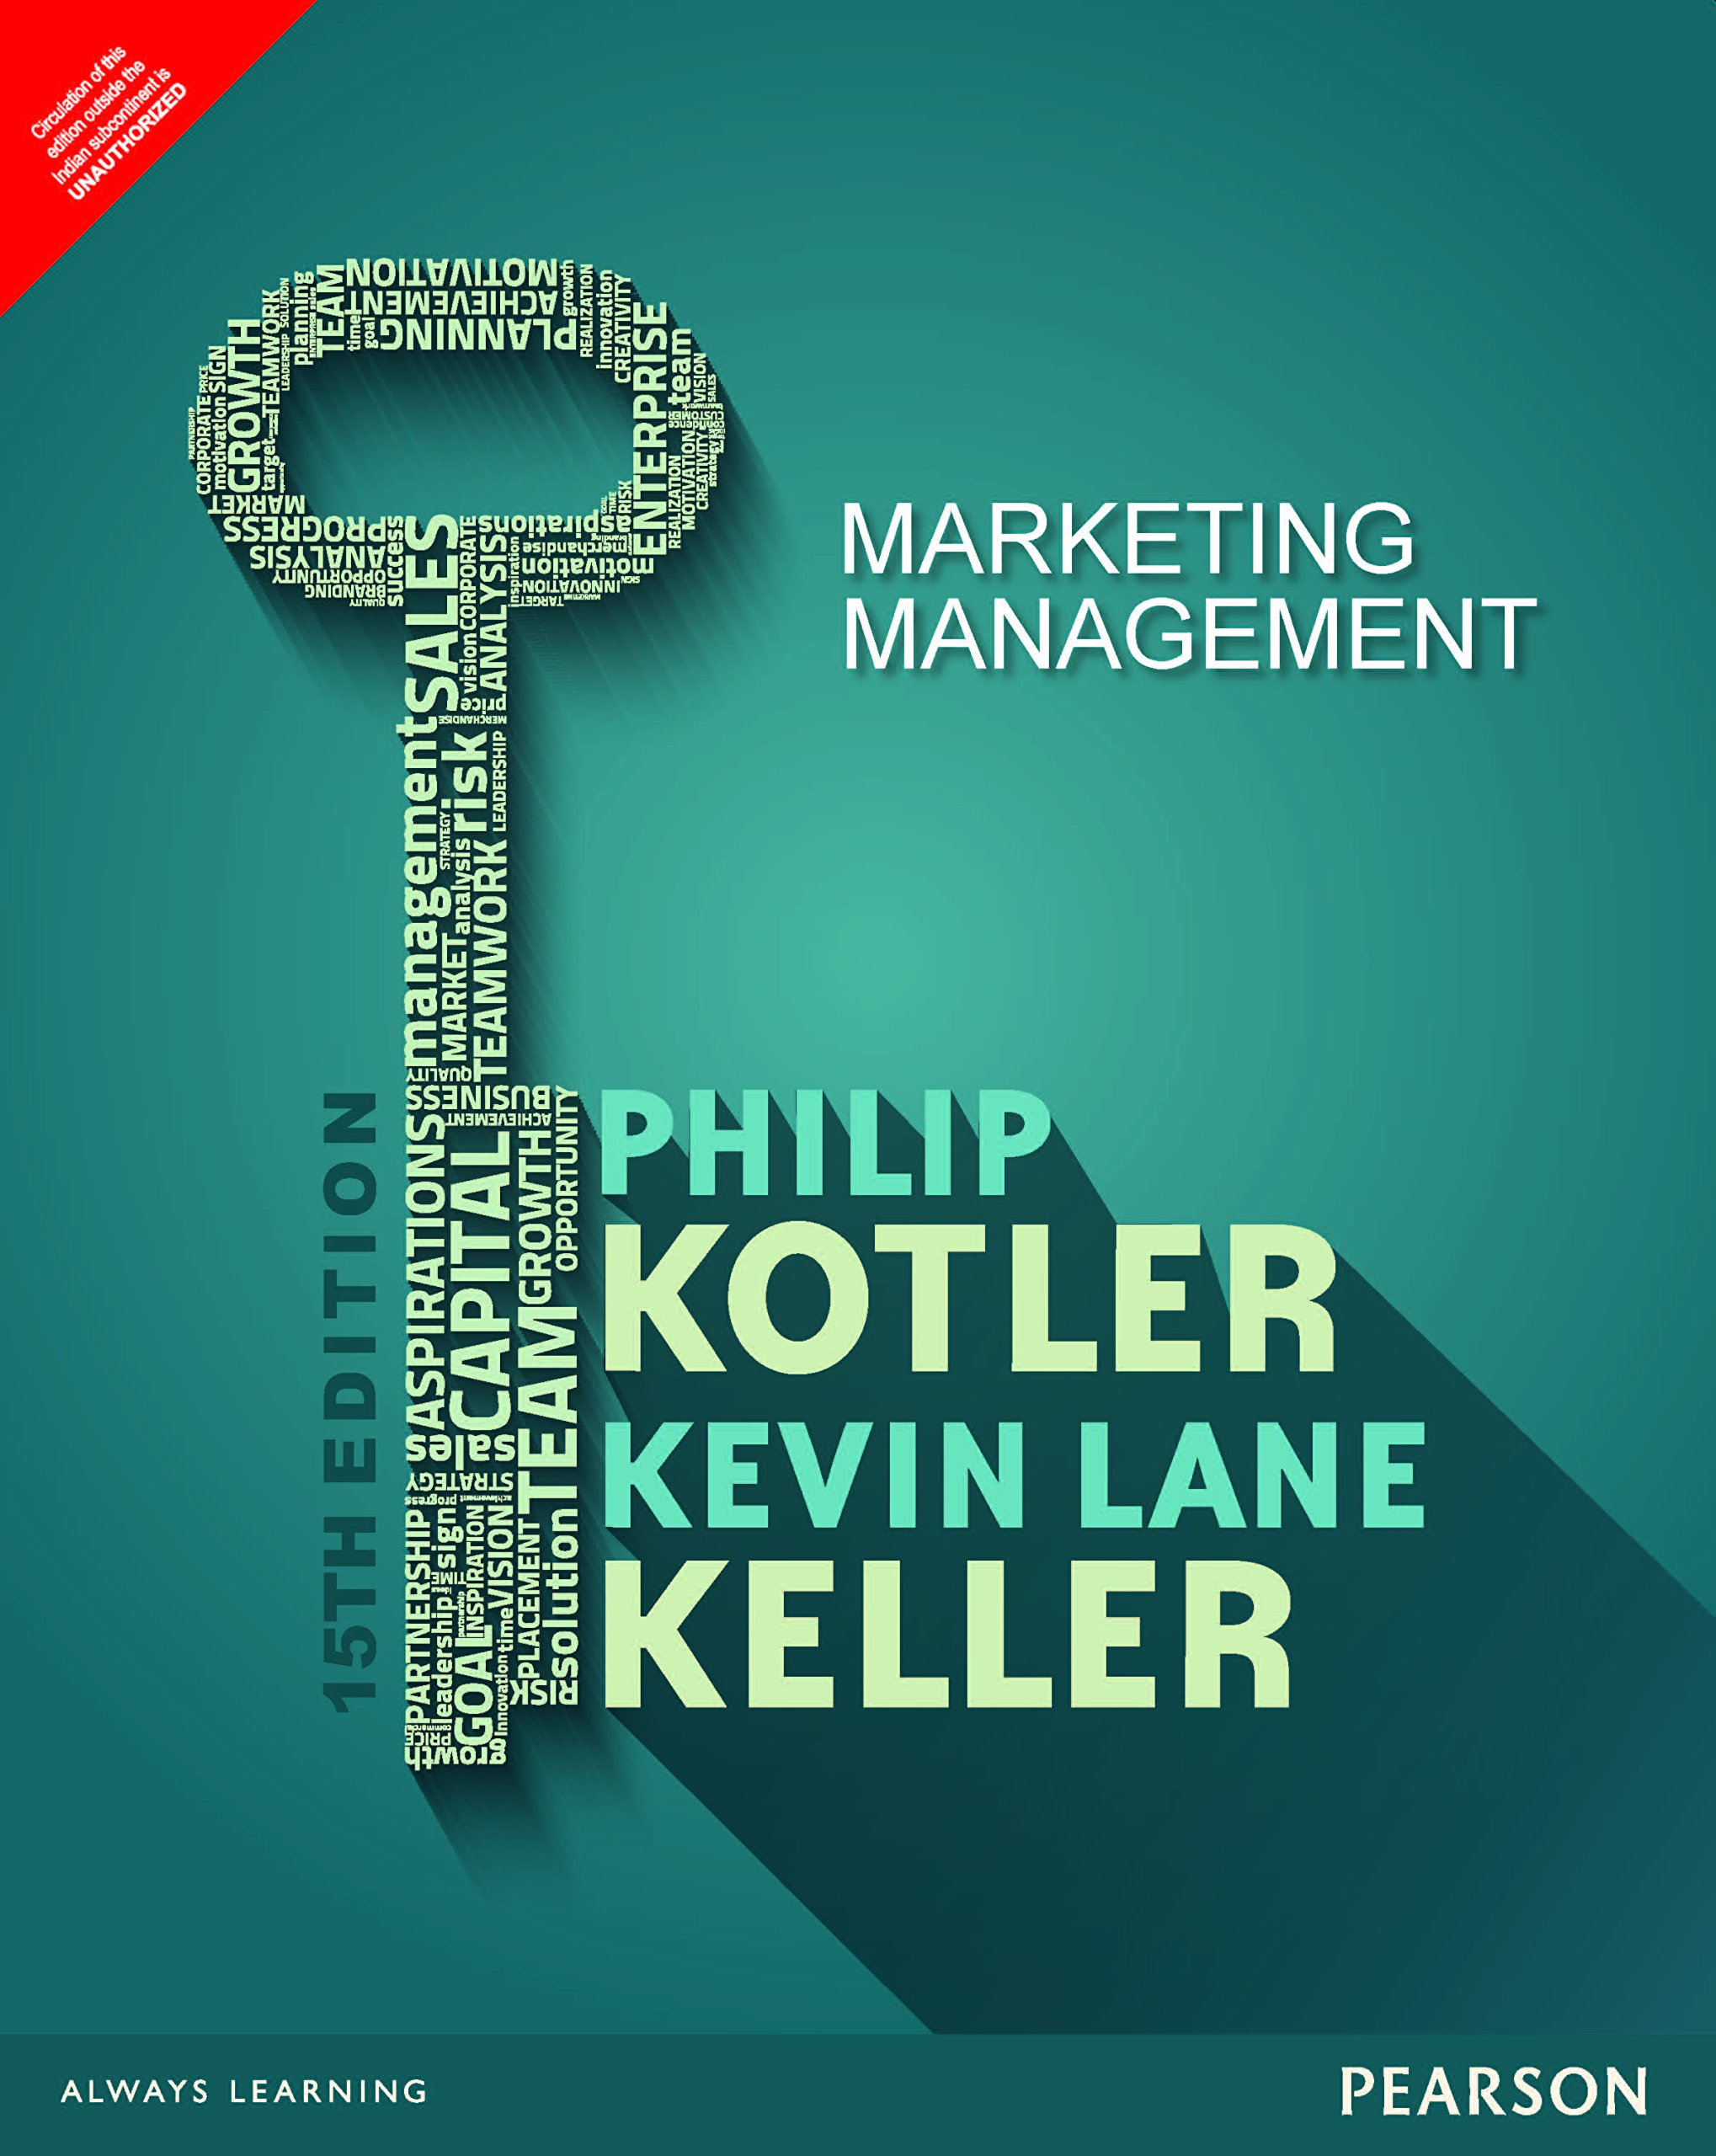 Philip Kotler Marketing Management Pdf